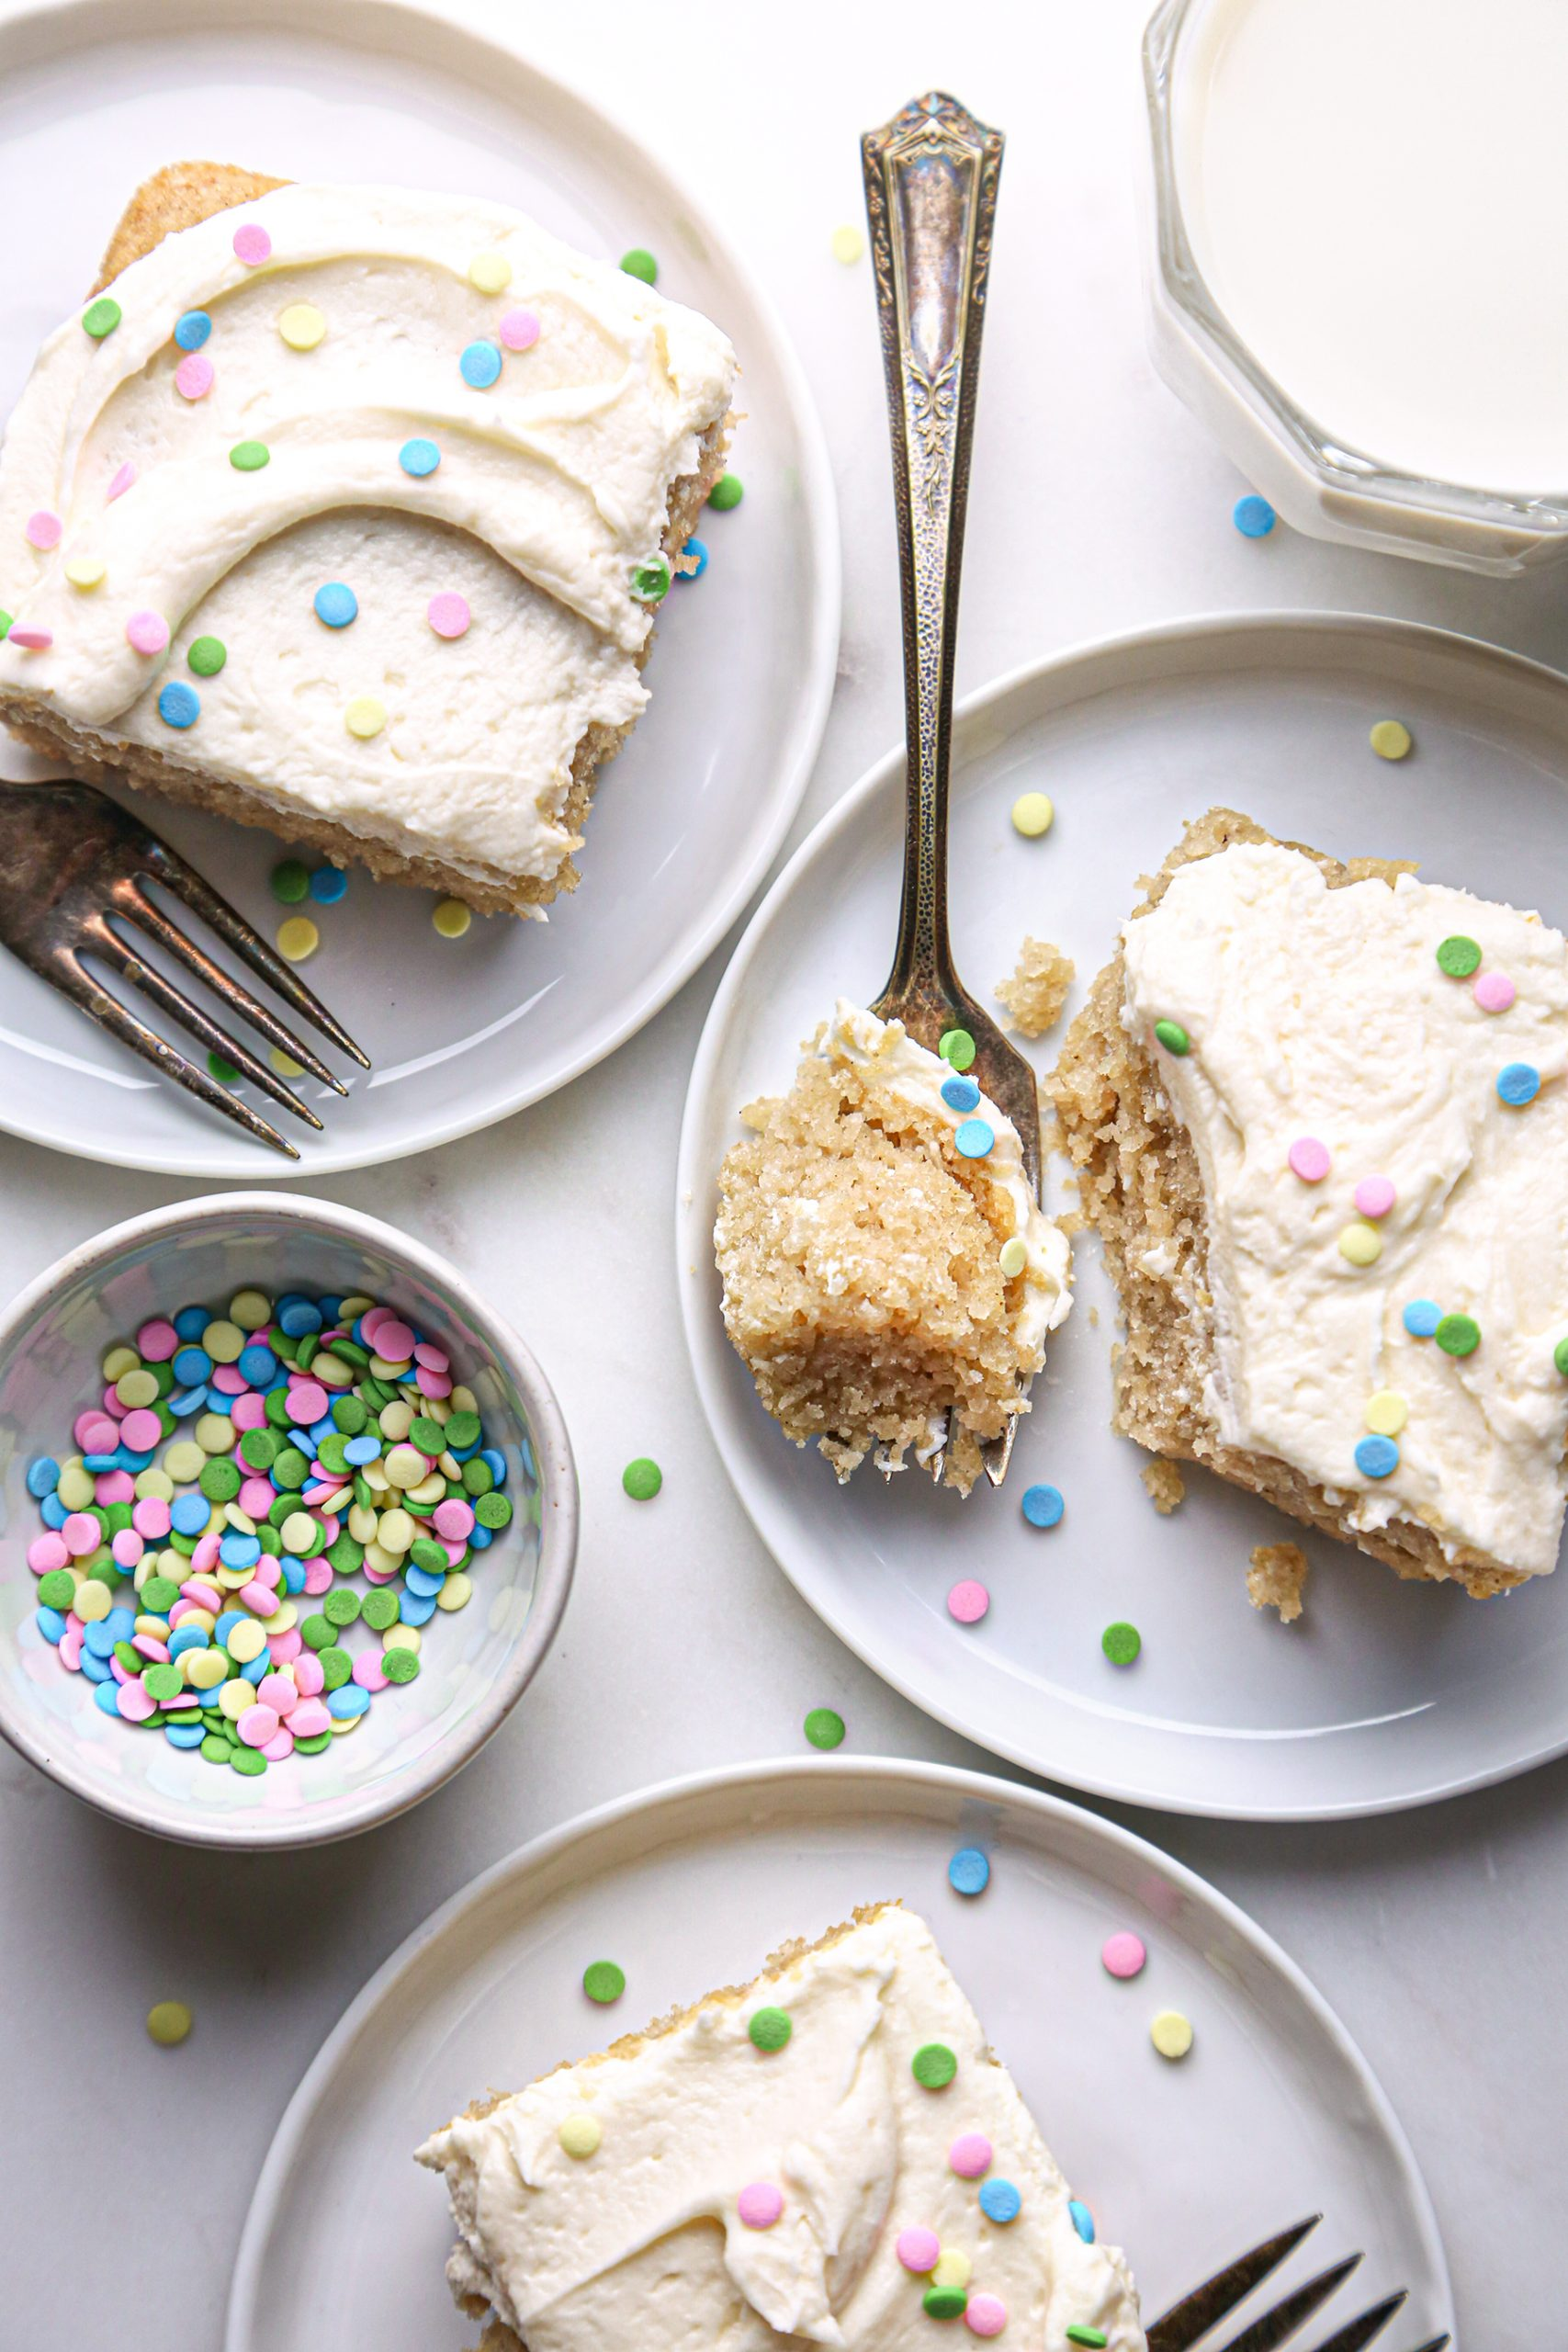 Easy Vanilla Cake with Vanilla Buttercream Slices with Sprinkles | Vegan Friendly with Gluten Free Option